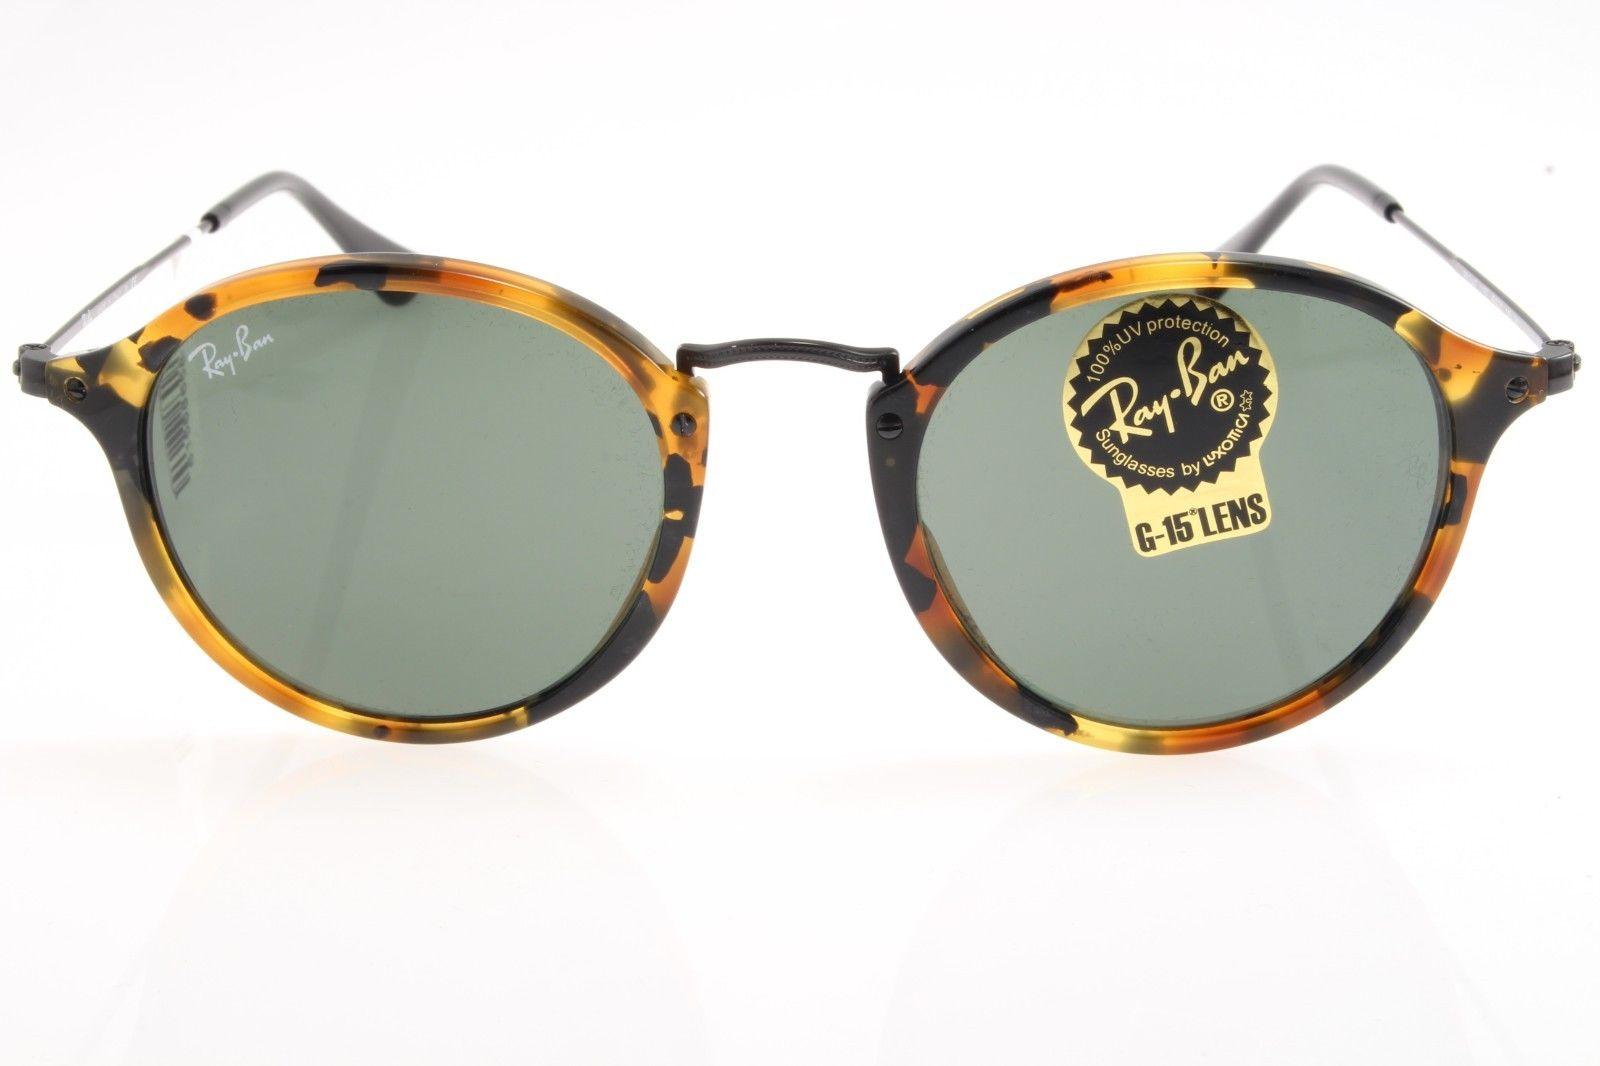 New original sunglasses Ray Ban RB 2447 1157 49 Spotted Black Havana Green  Lens 251623cdb2